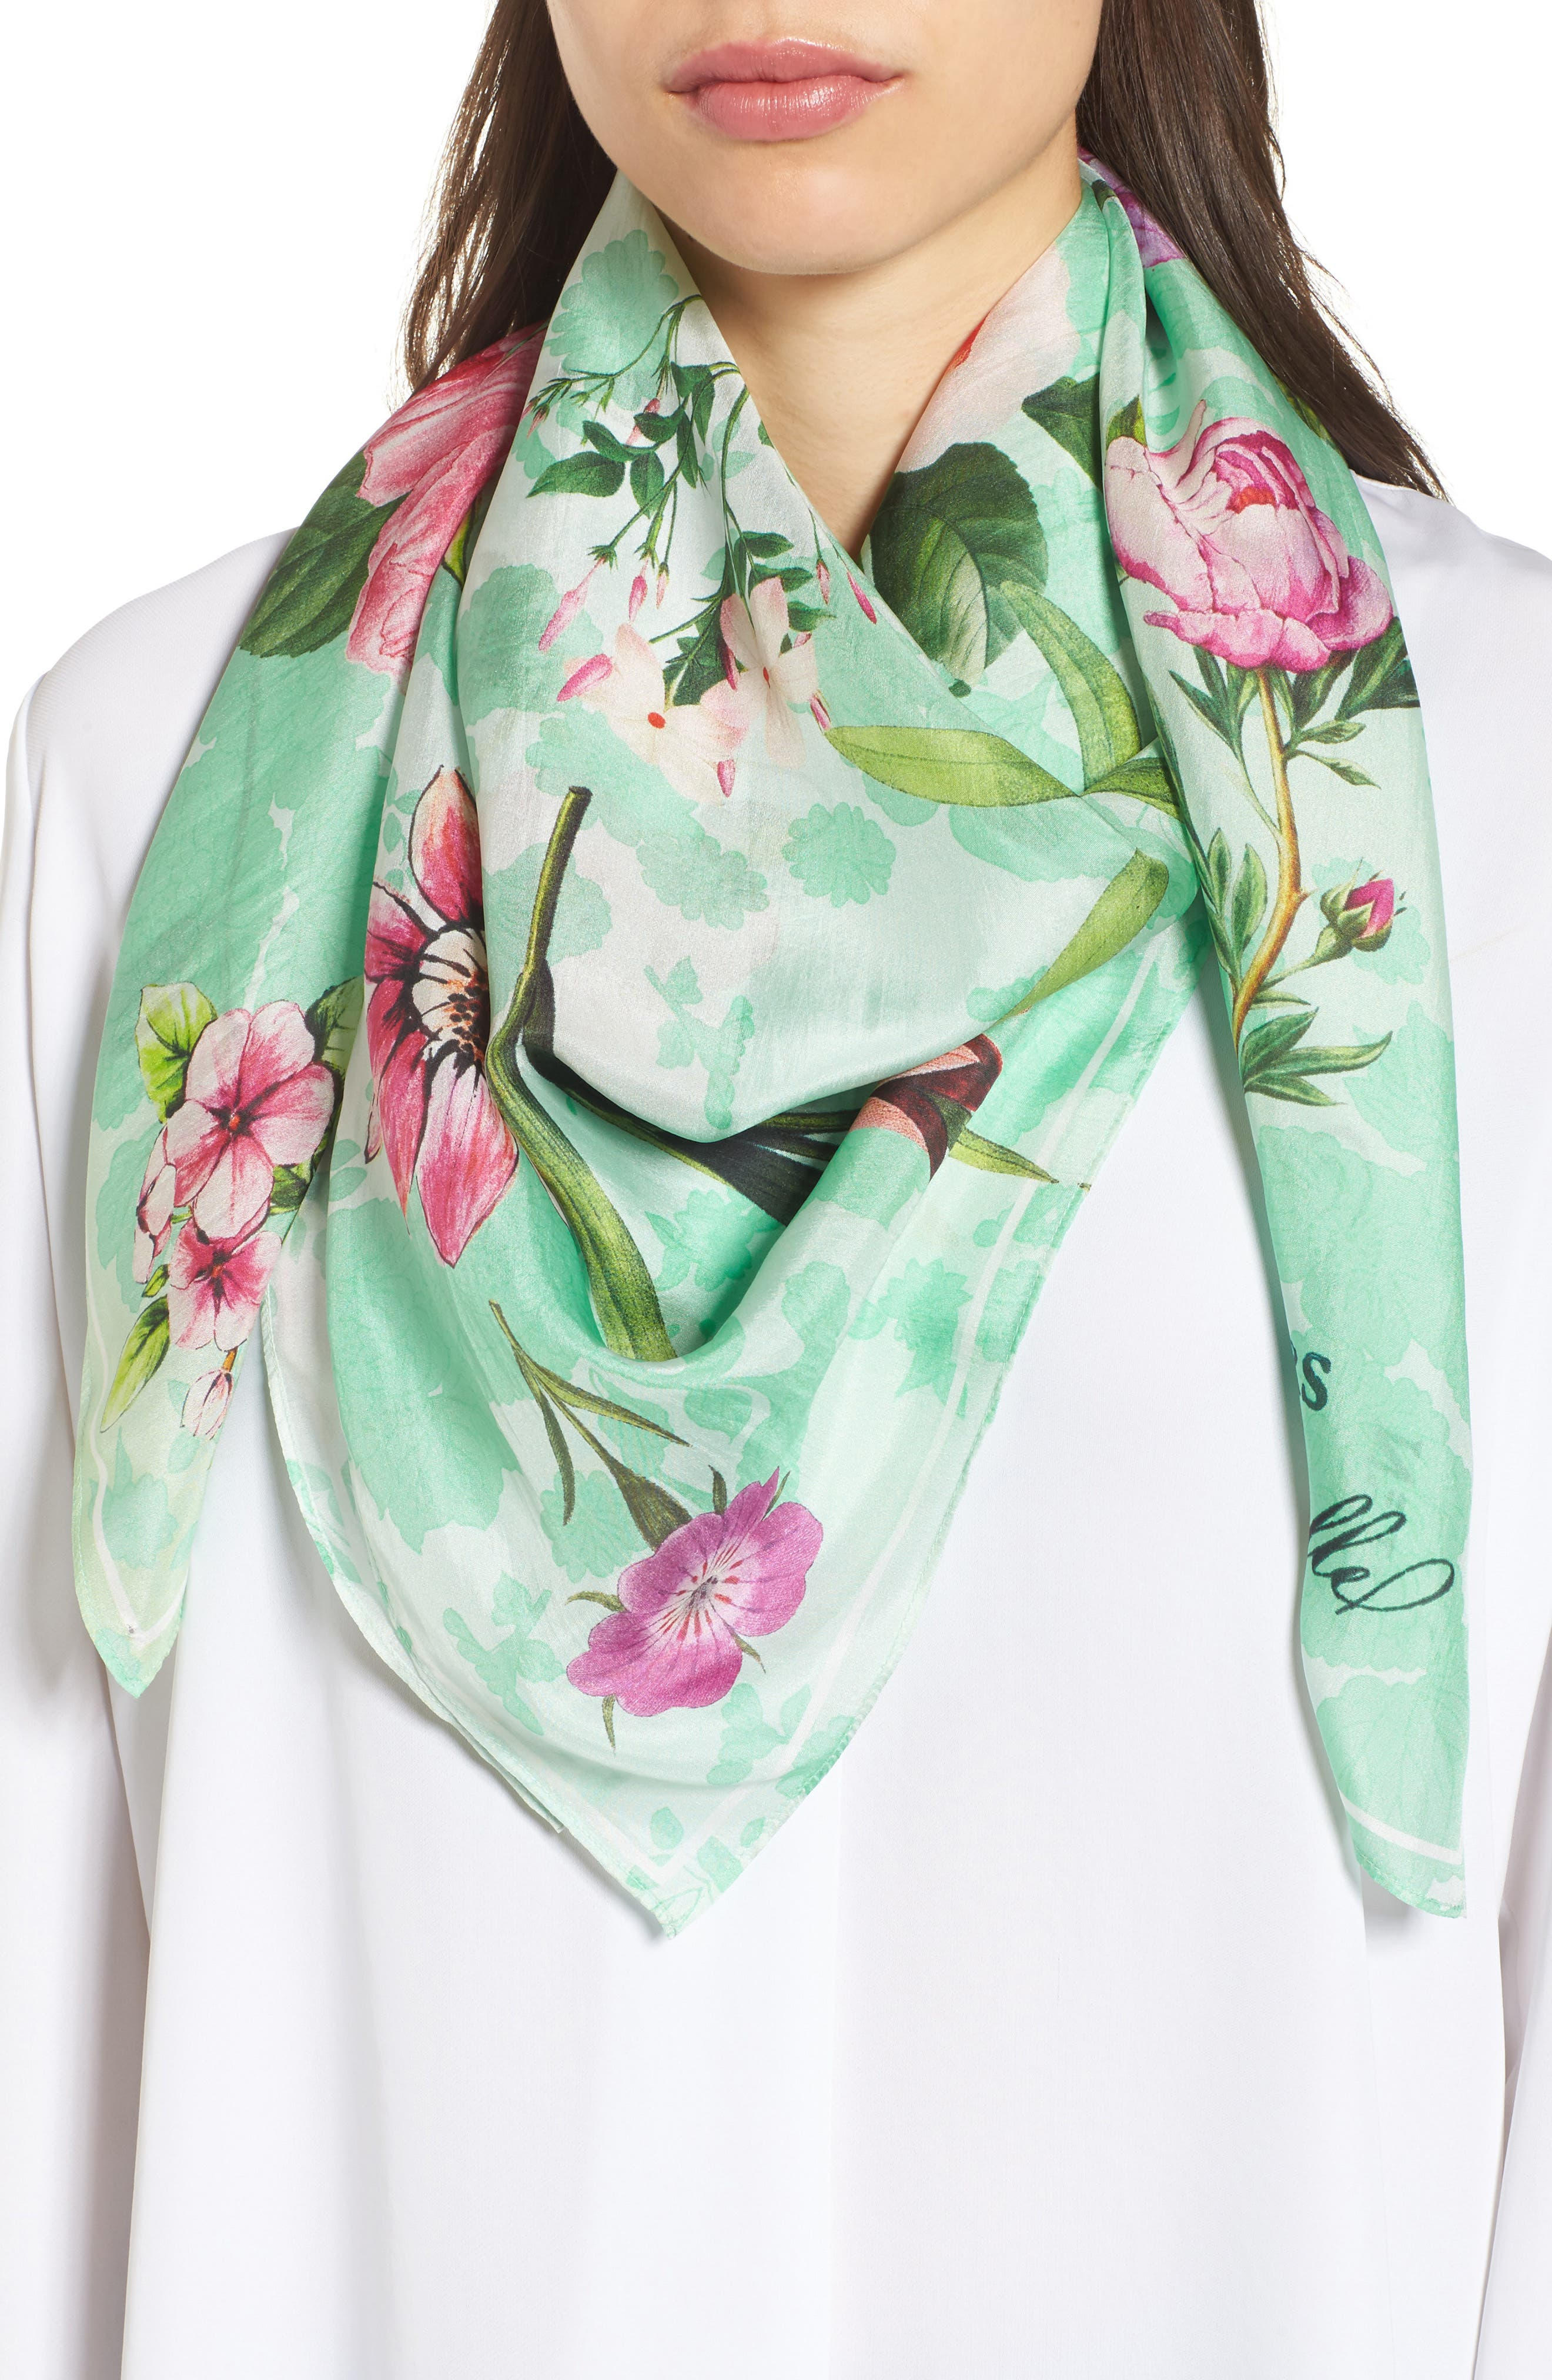 Print Square Silk Scarf,                             Main thumbnail 1, color,                             330